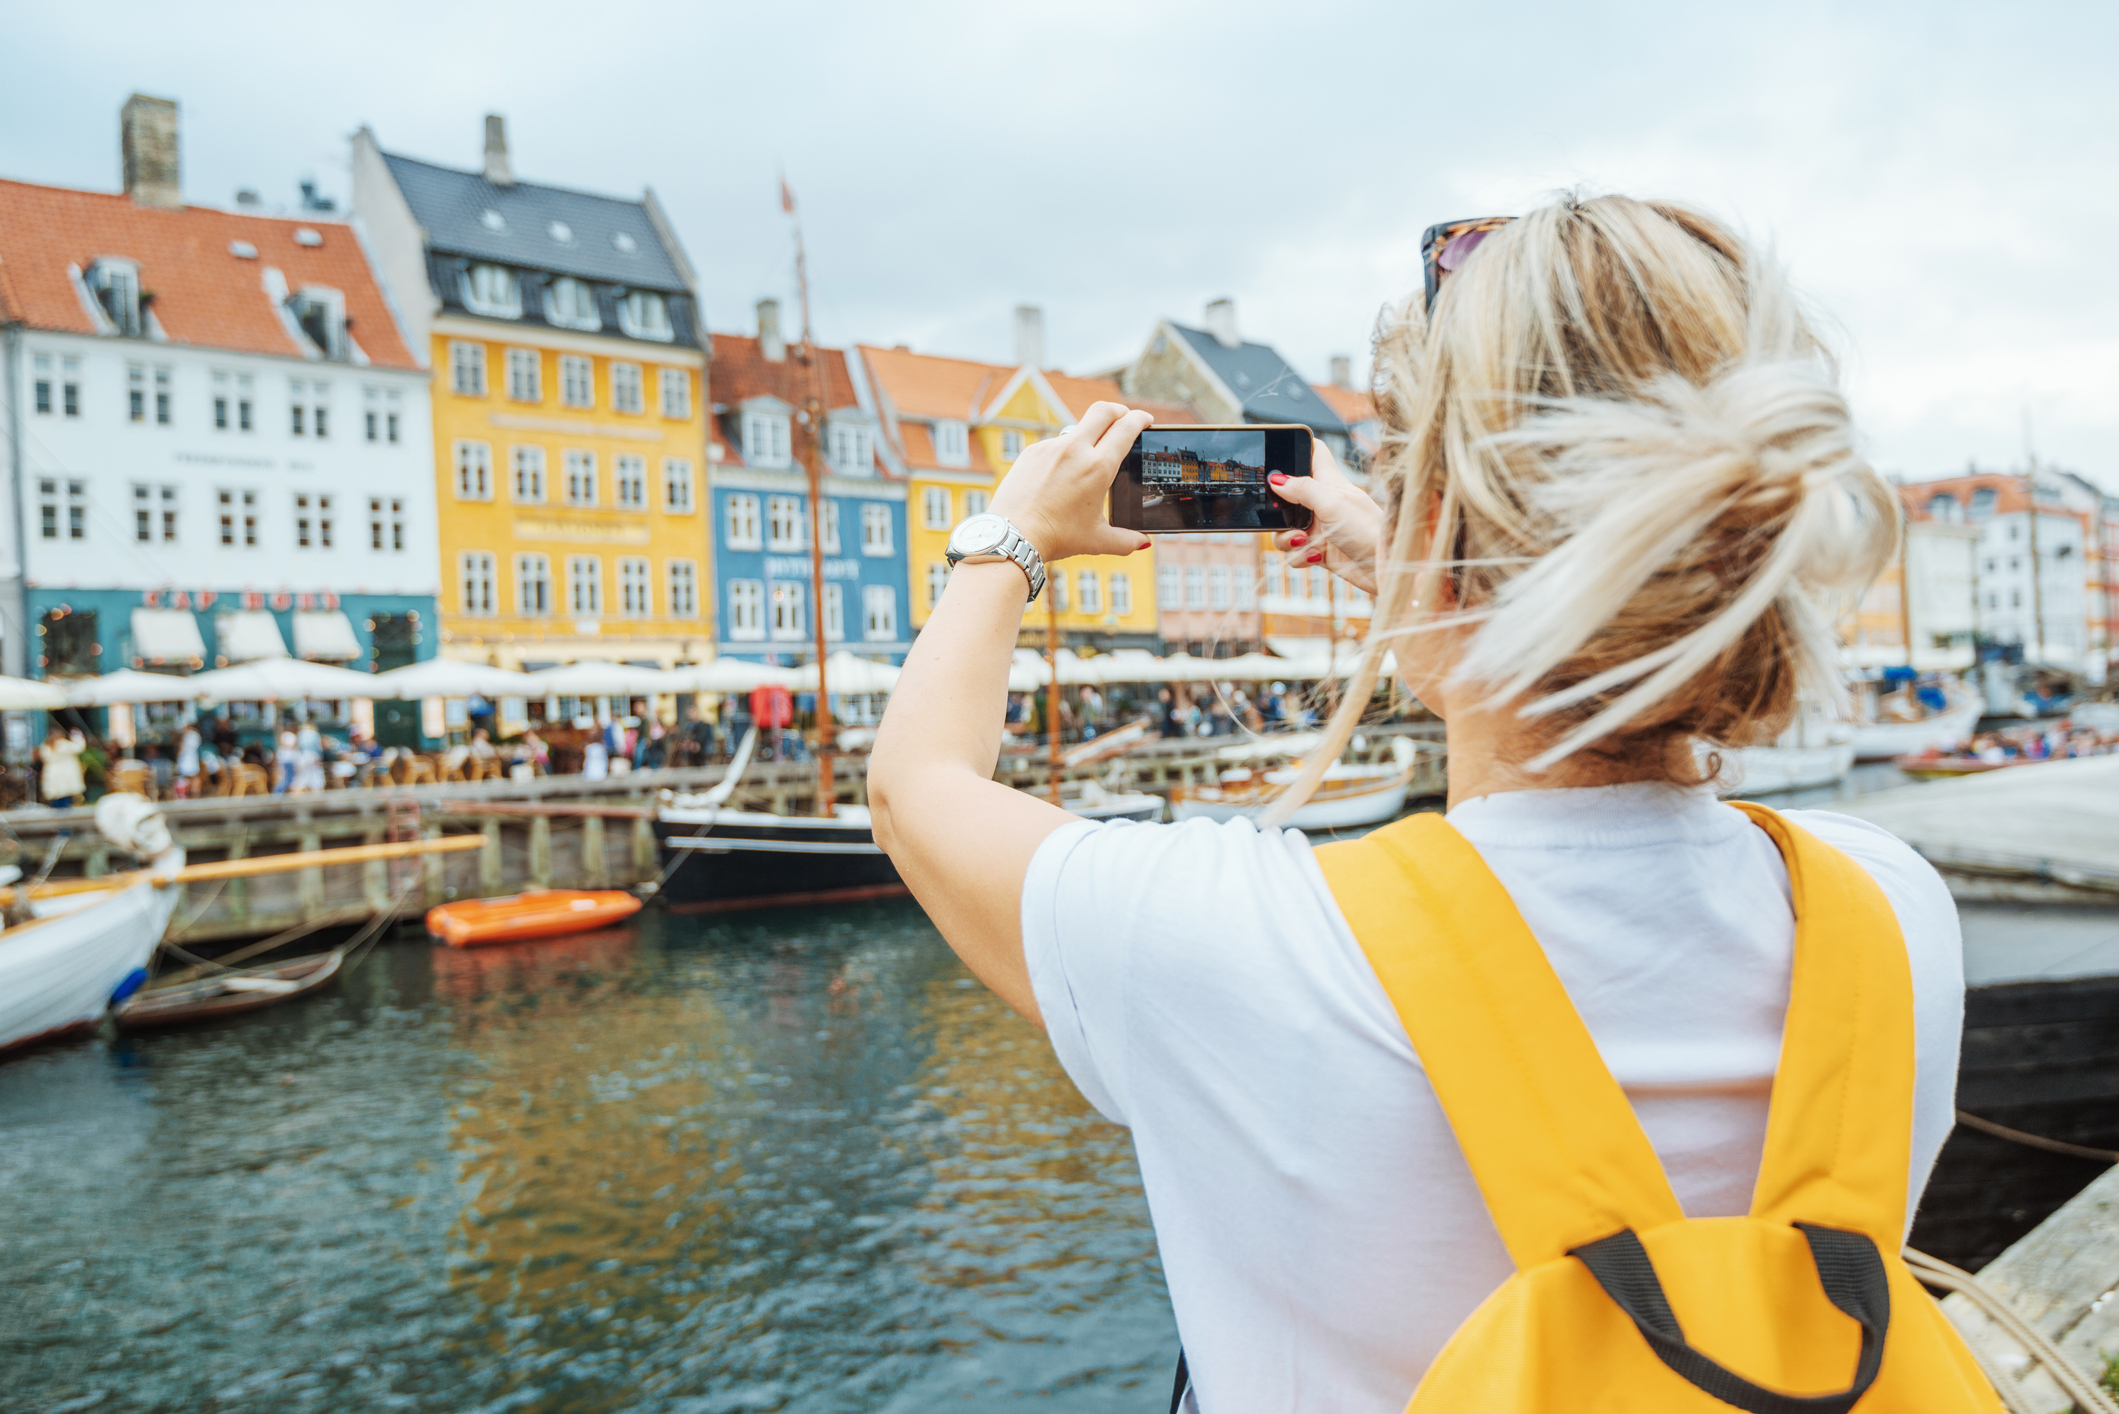 A Scandi-chic girls' getaway